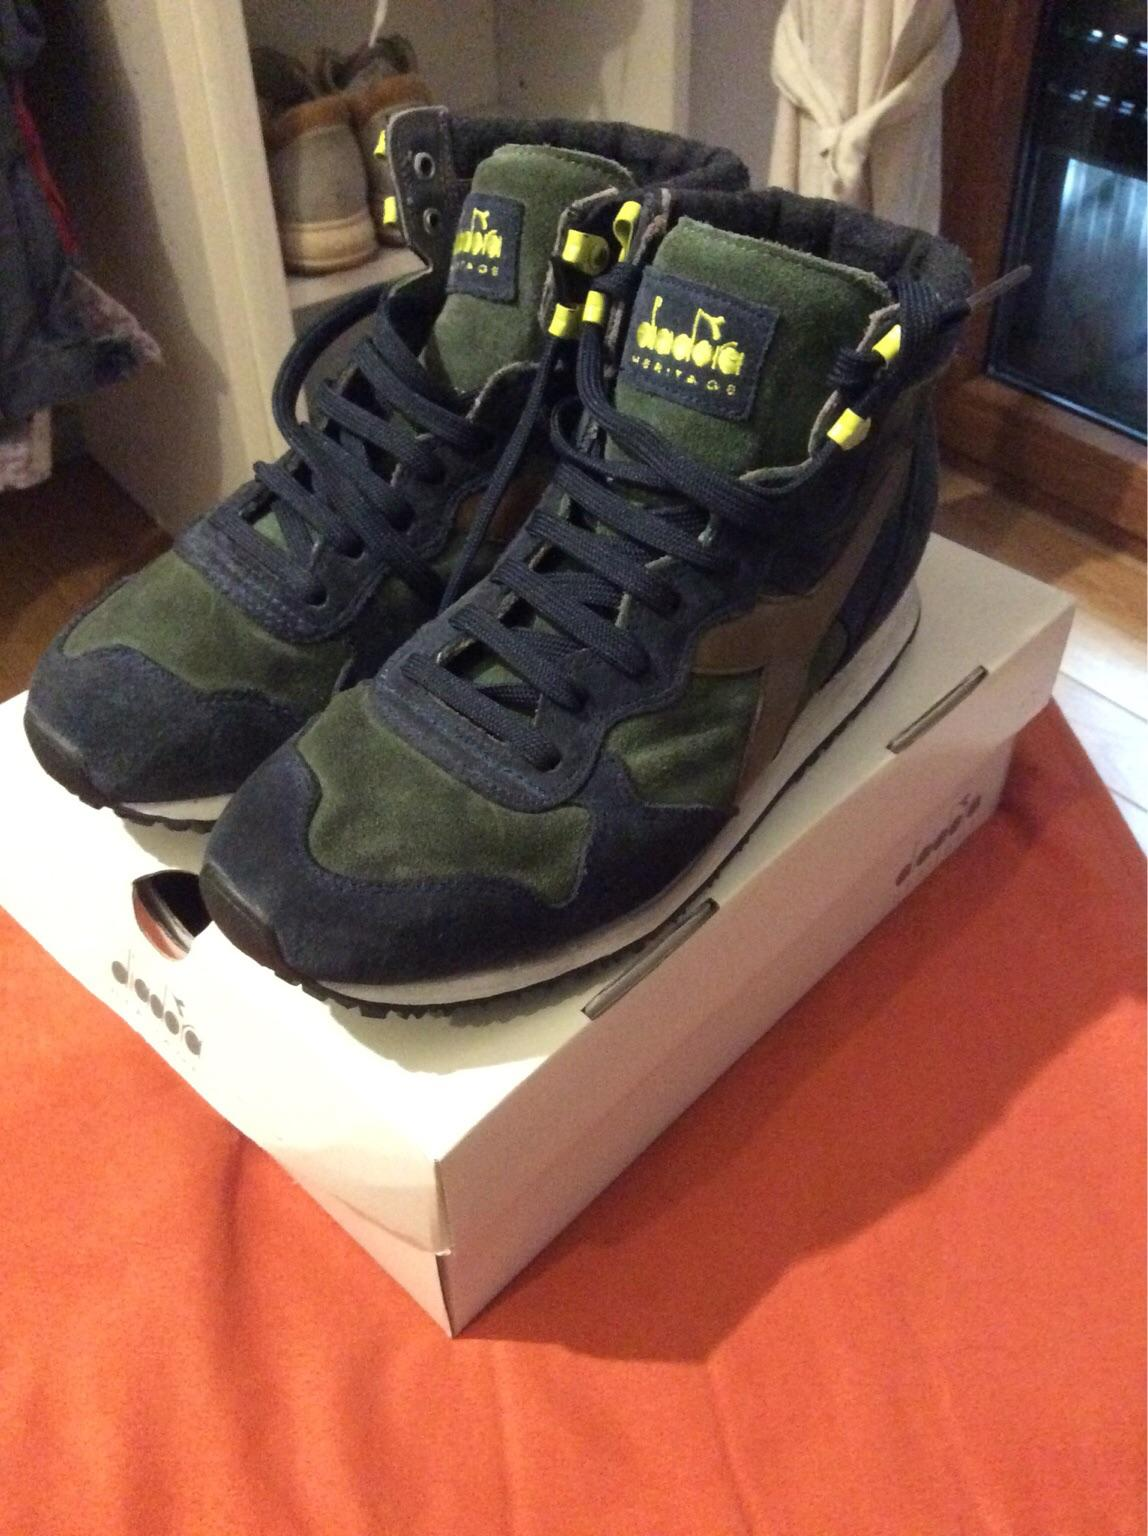 Diadora Trident in 00060 Le Rughe for €45.00 for sale Shpock